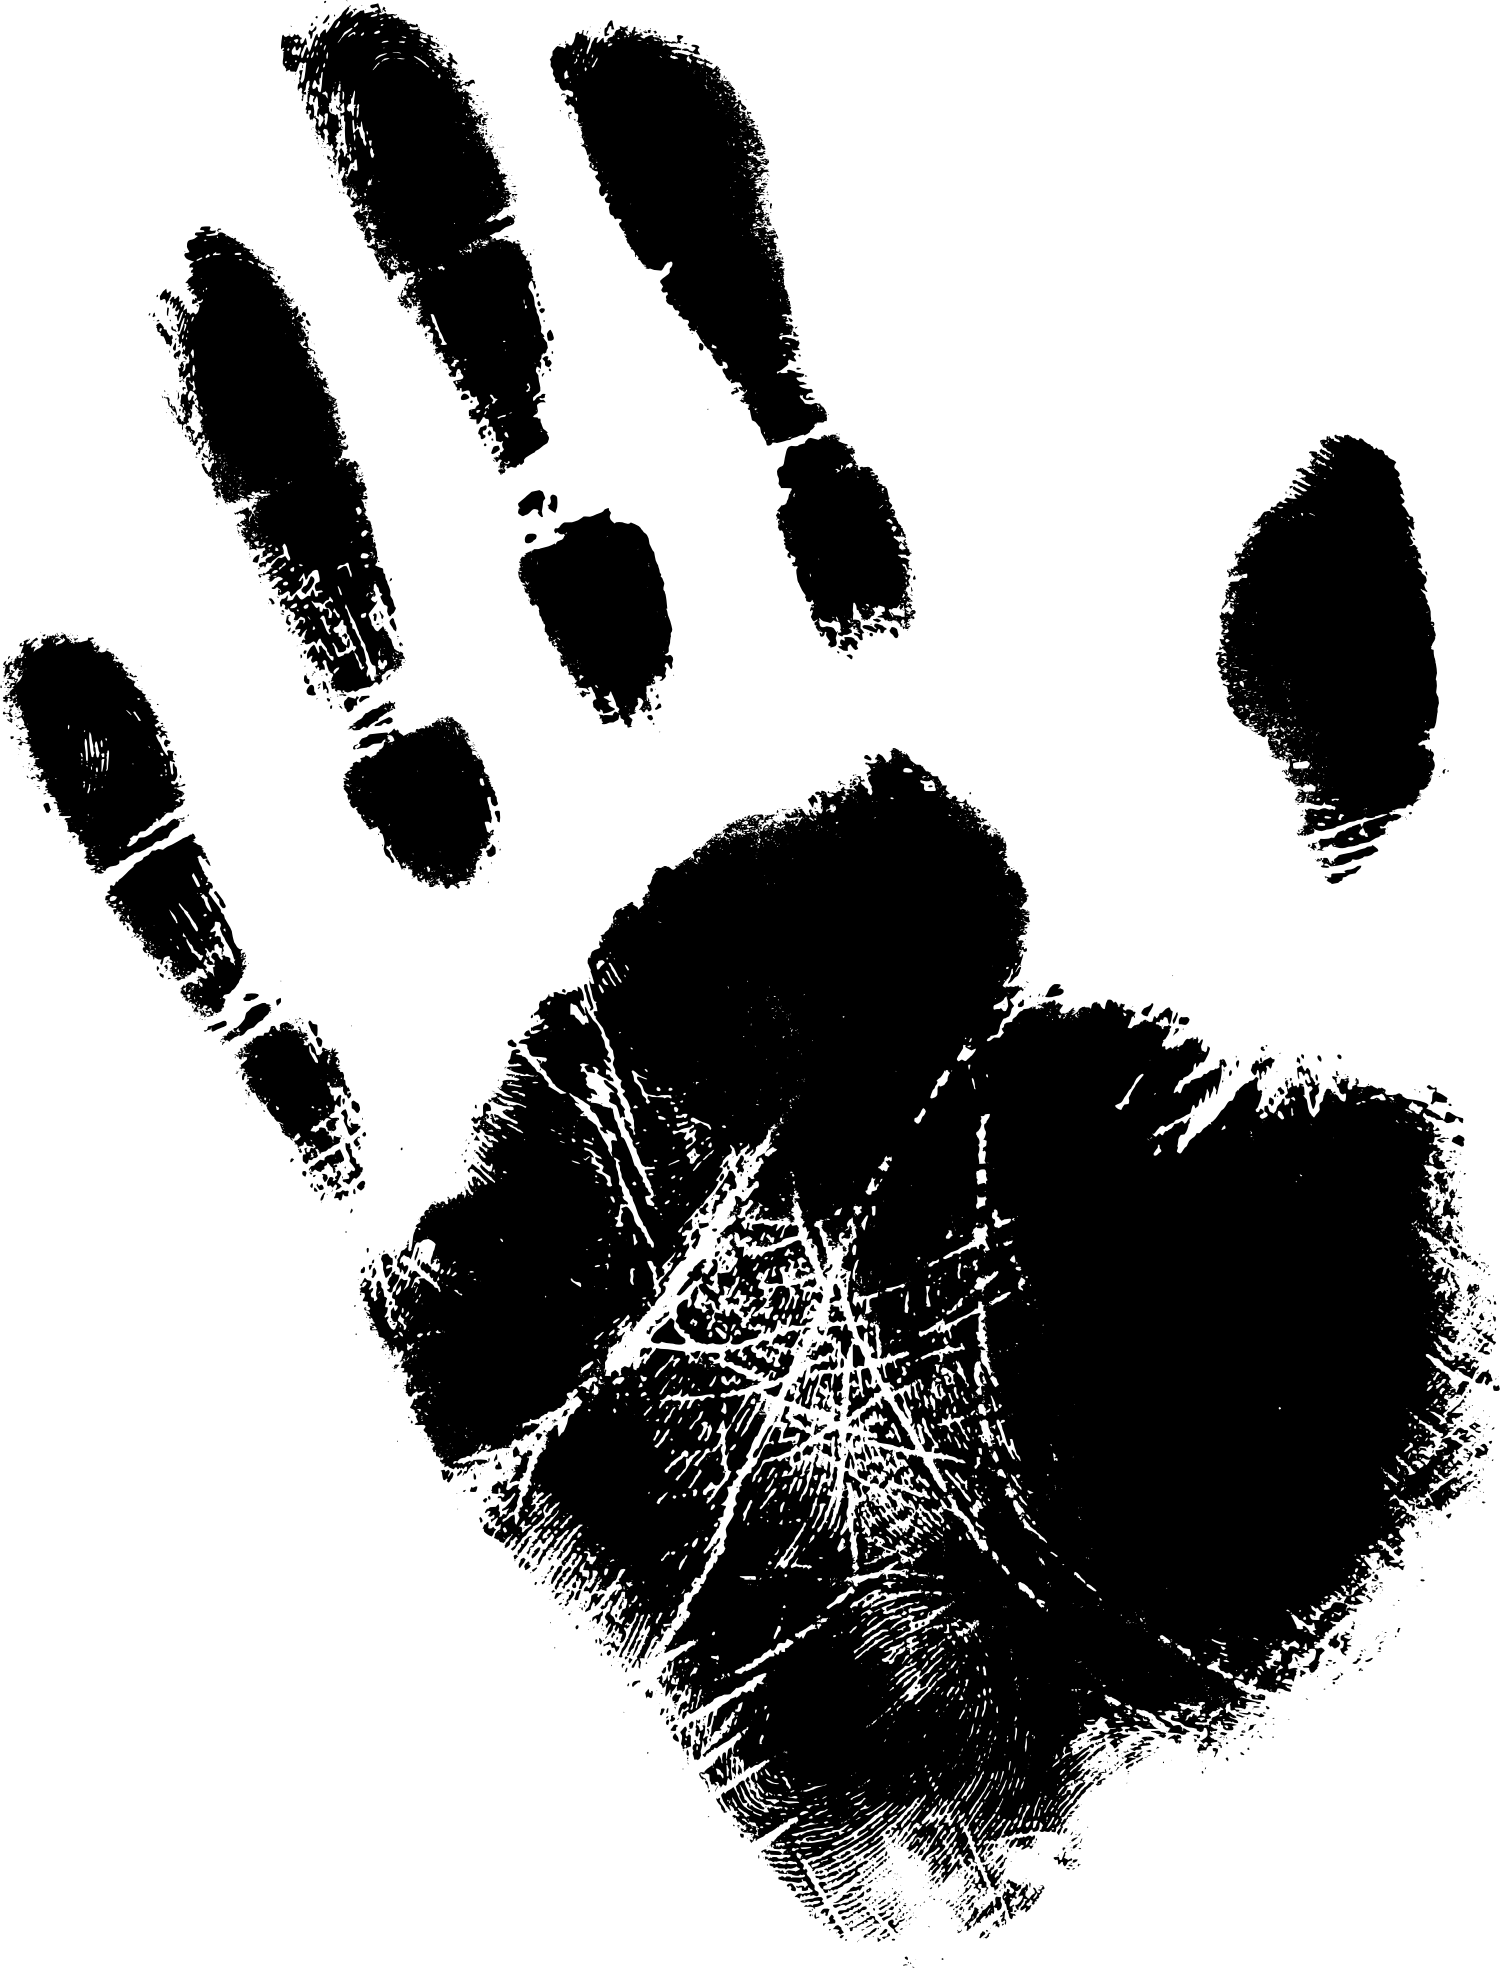 Free photo handprints hands. Paint clipart handprint